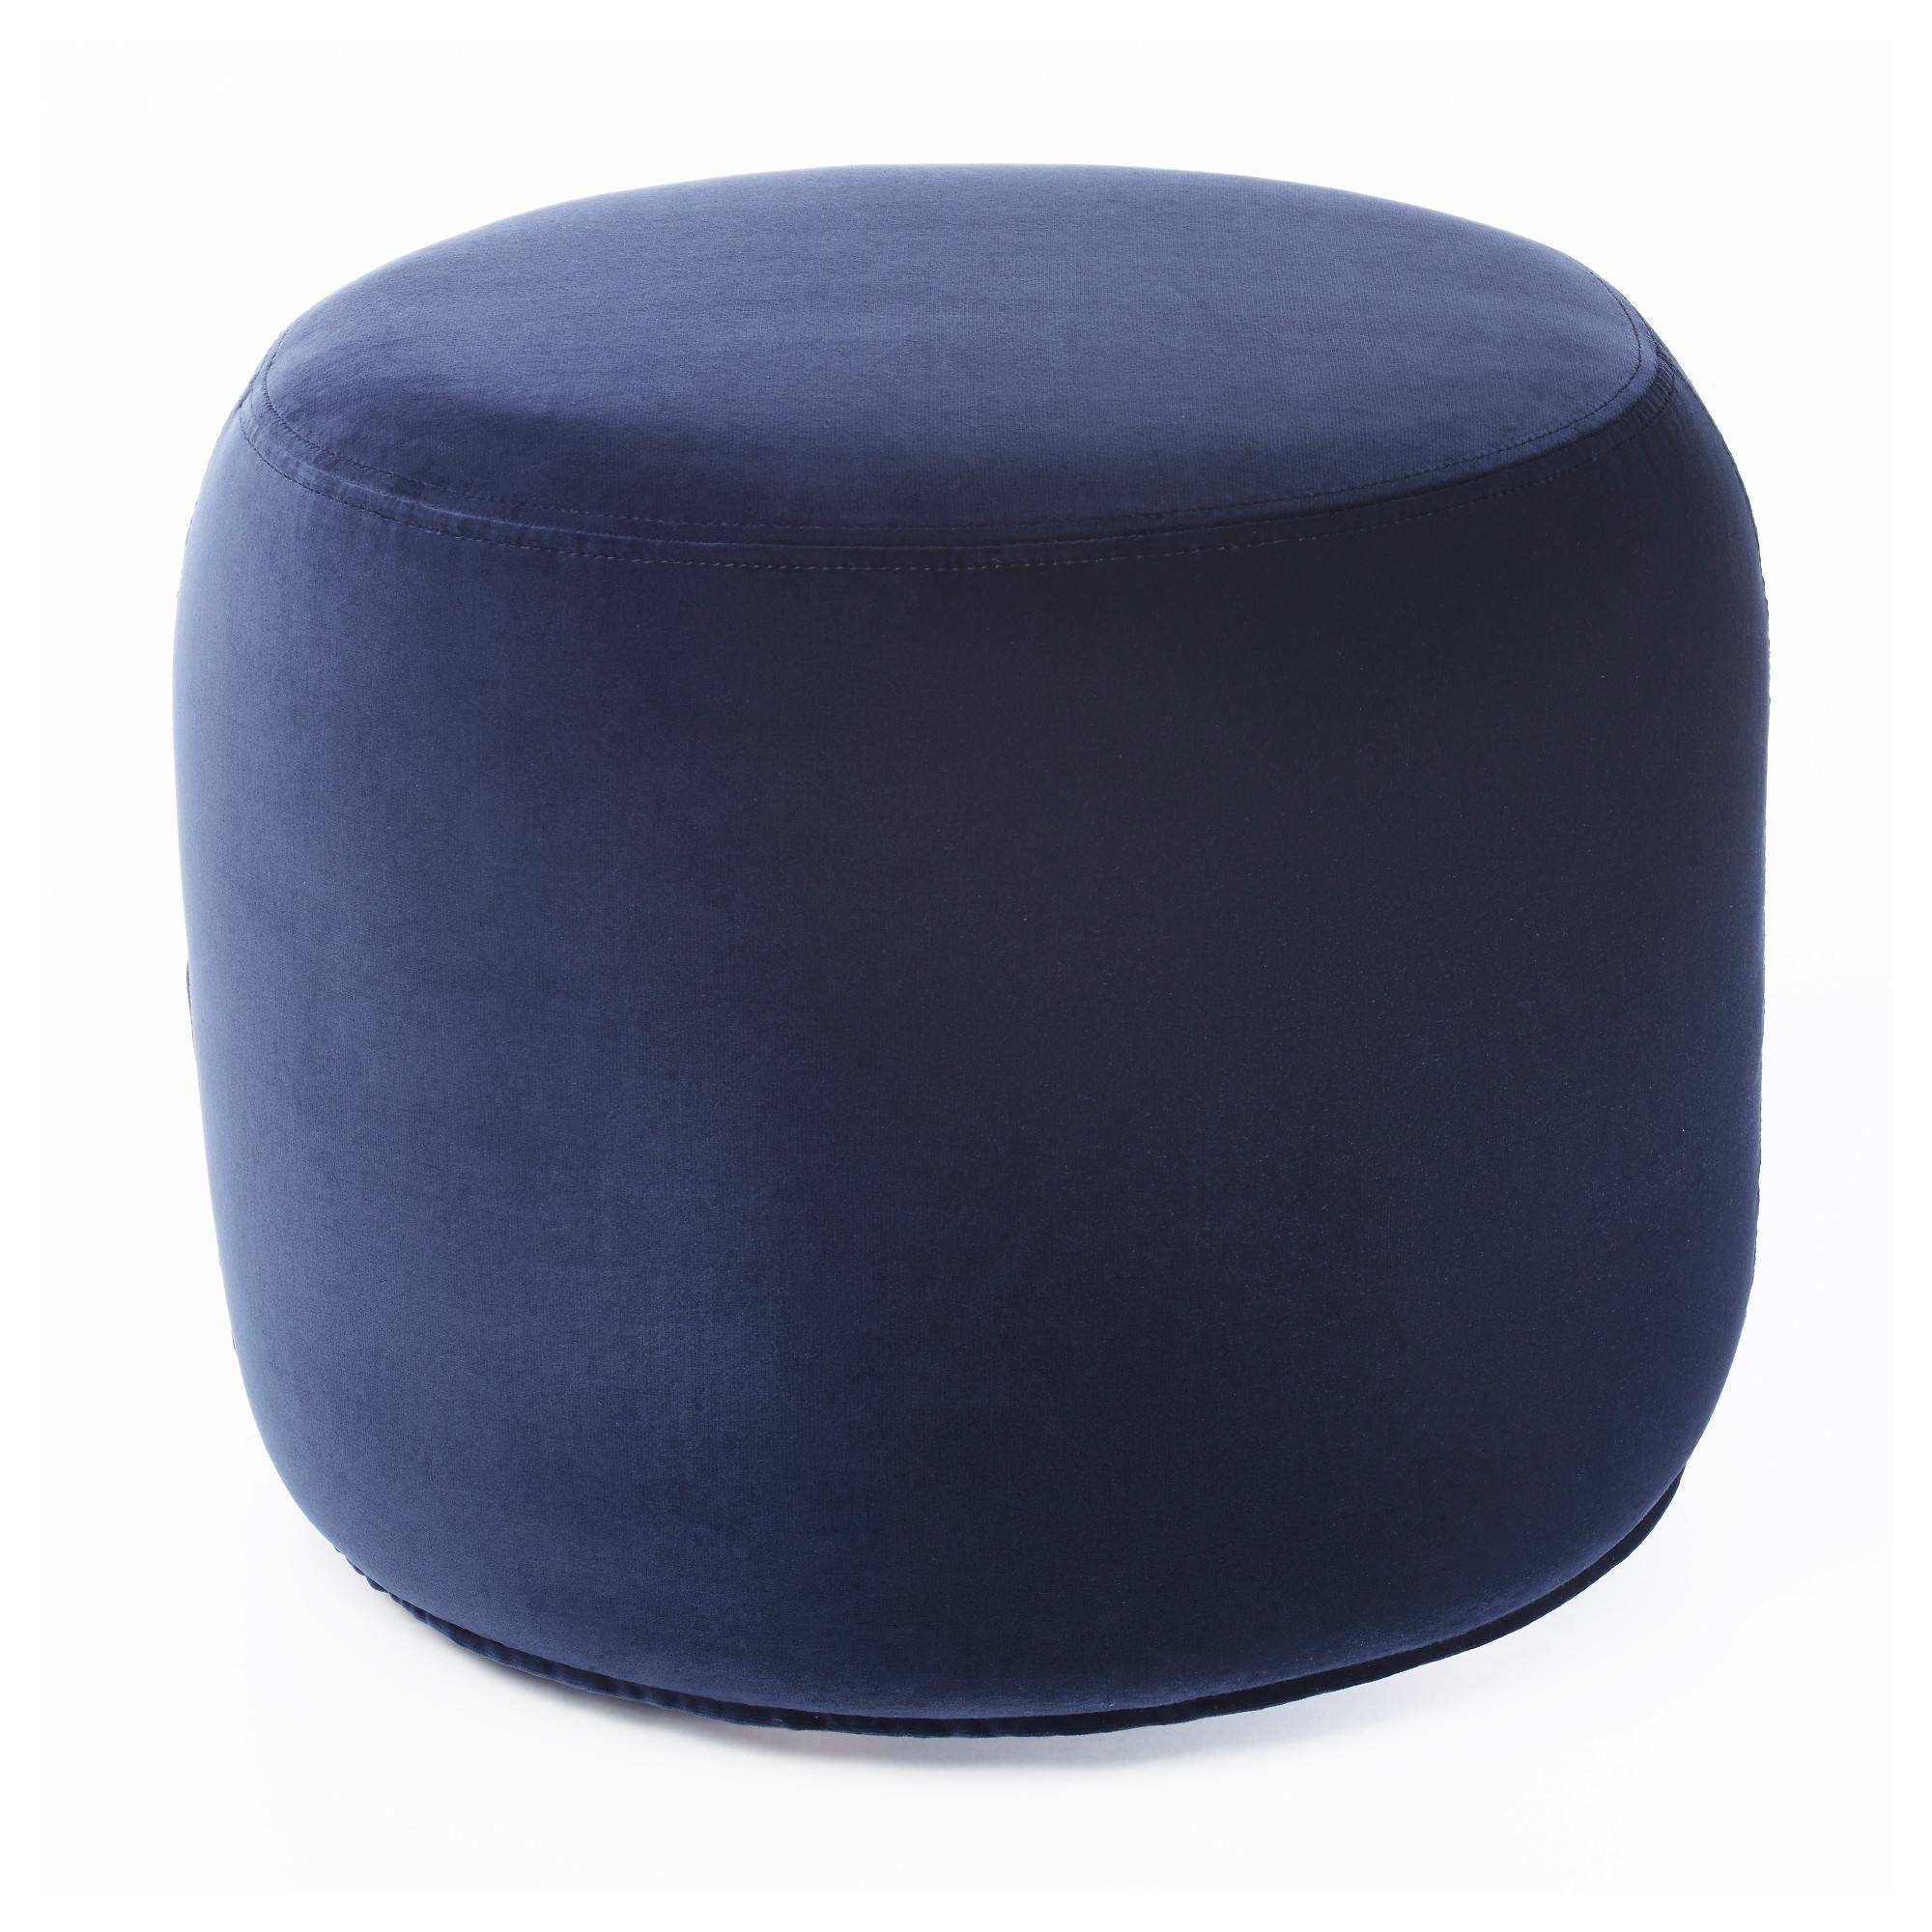 Footstools, Ottomans & Pouffes | Ikea with regard to Footstools And Pouffes (Image 14 of 30)